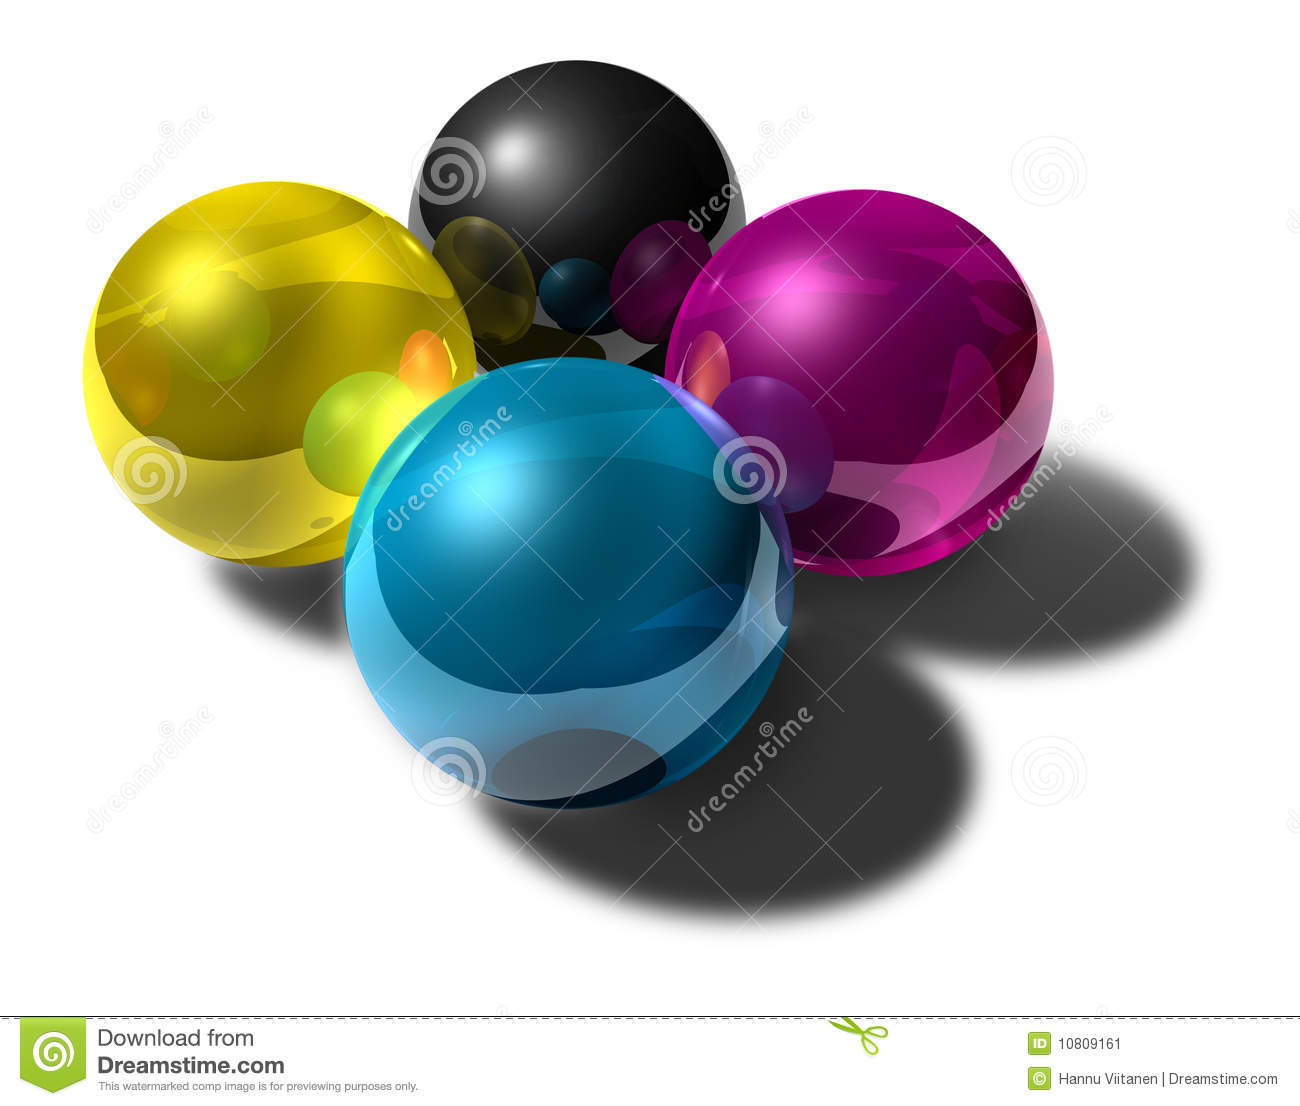 Cmyk colored reflective balls